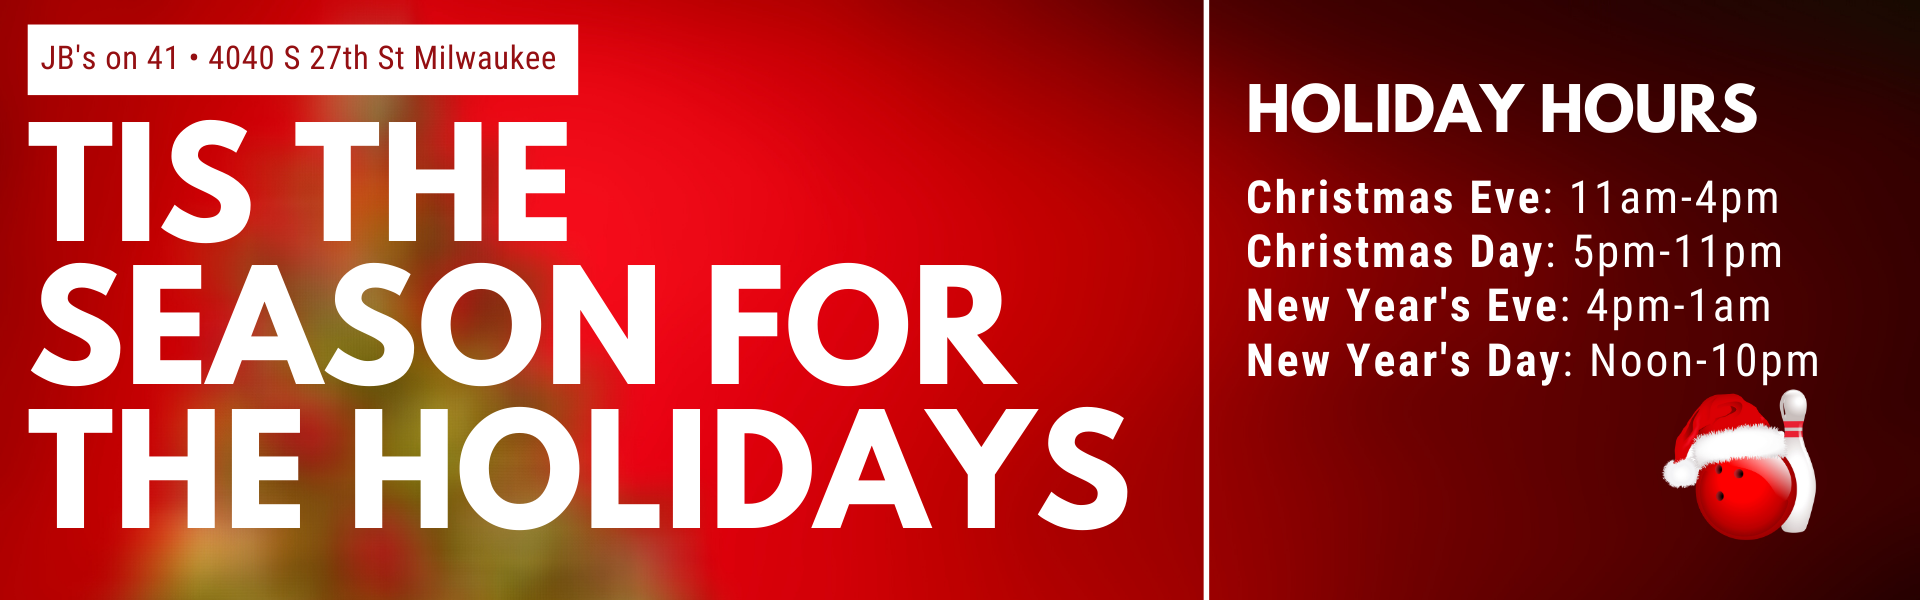 JB's on 41 is open over the holidays | holiday hours 2020 | Milwaukee, WI